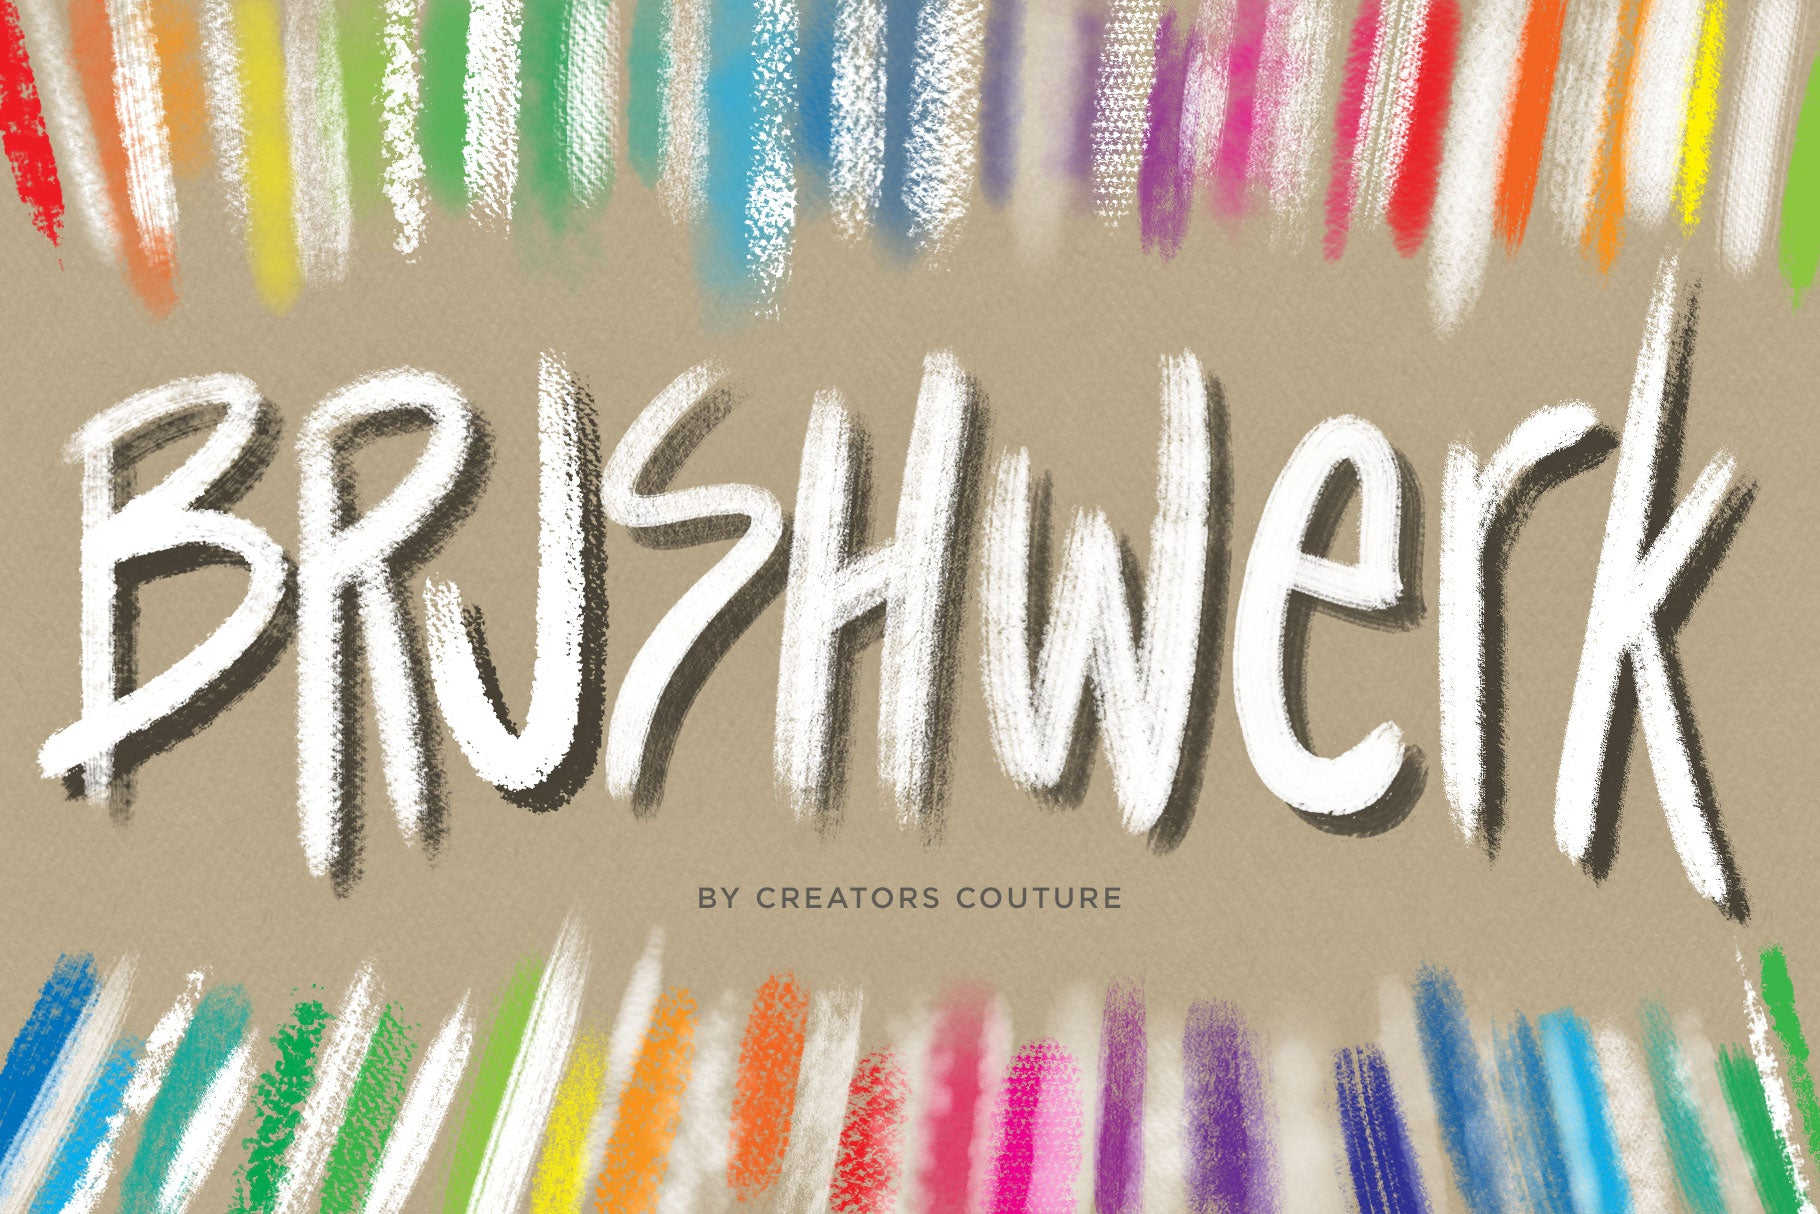 Brushwerk Your New Essential Fashion-Inspired Photoshop Brushes Cover image